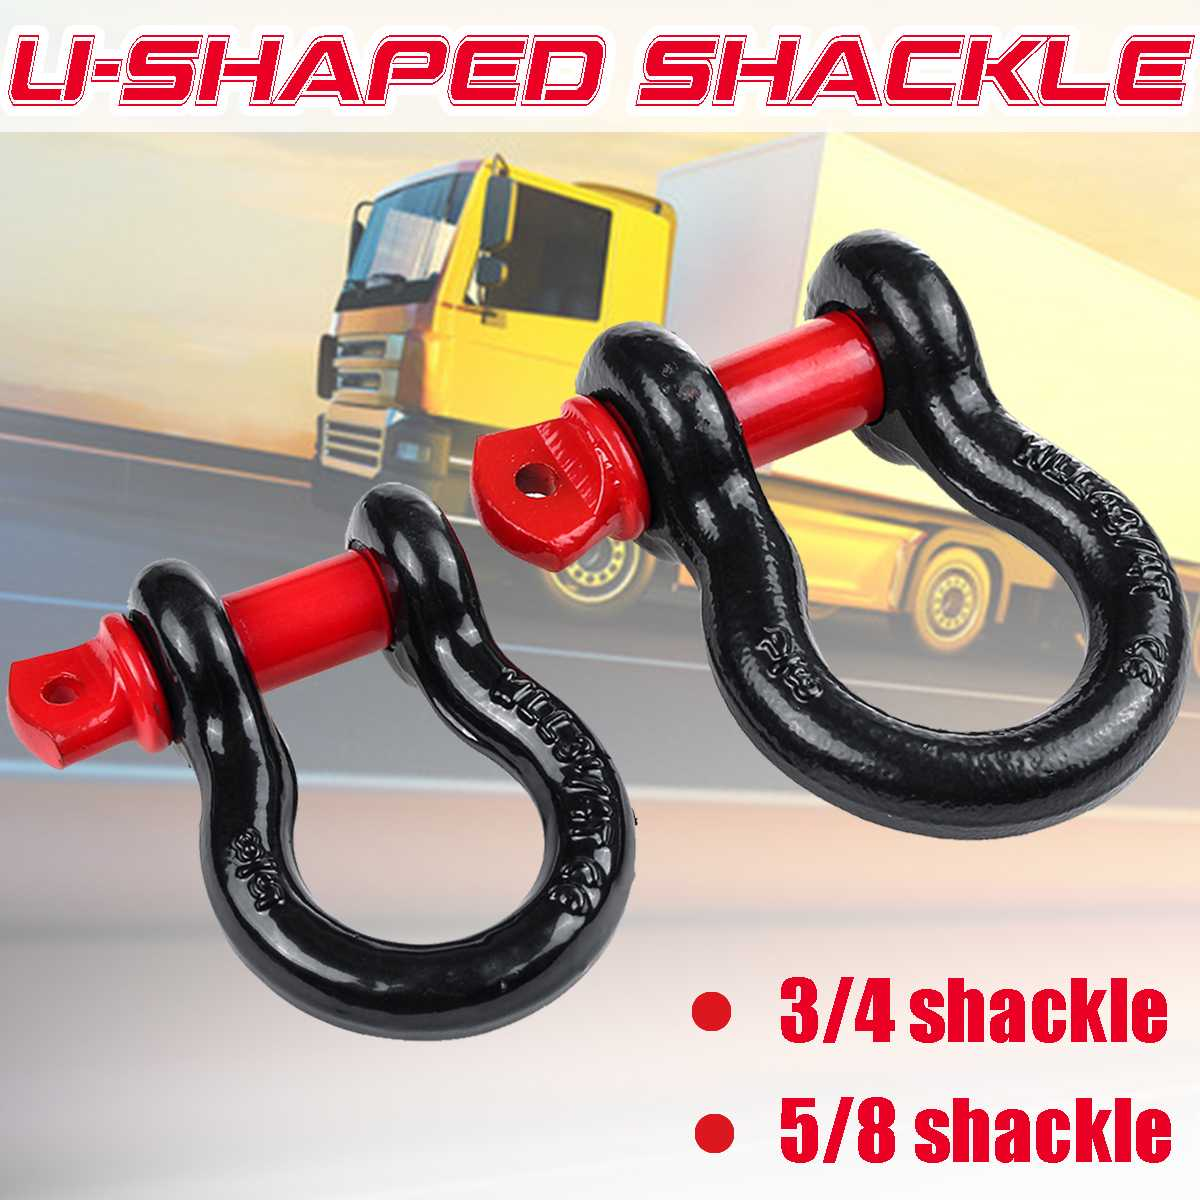 Trailer Hook Heavy Duty Galvanized Shackles D Ring 12,000 Lbs Capacity For Vehicle Recovery Towing Car 3/4 5/8 Shackle Universal